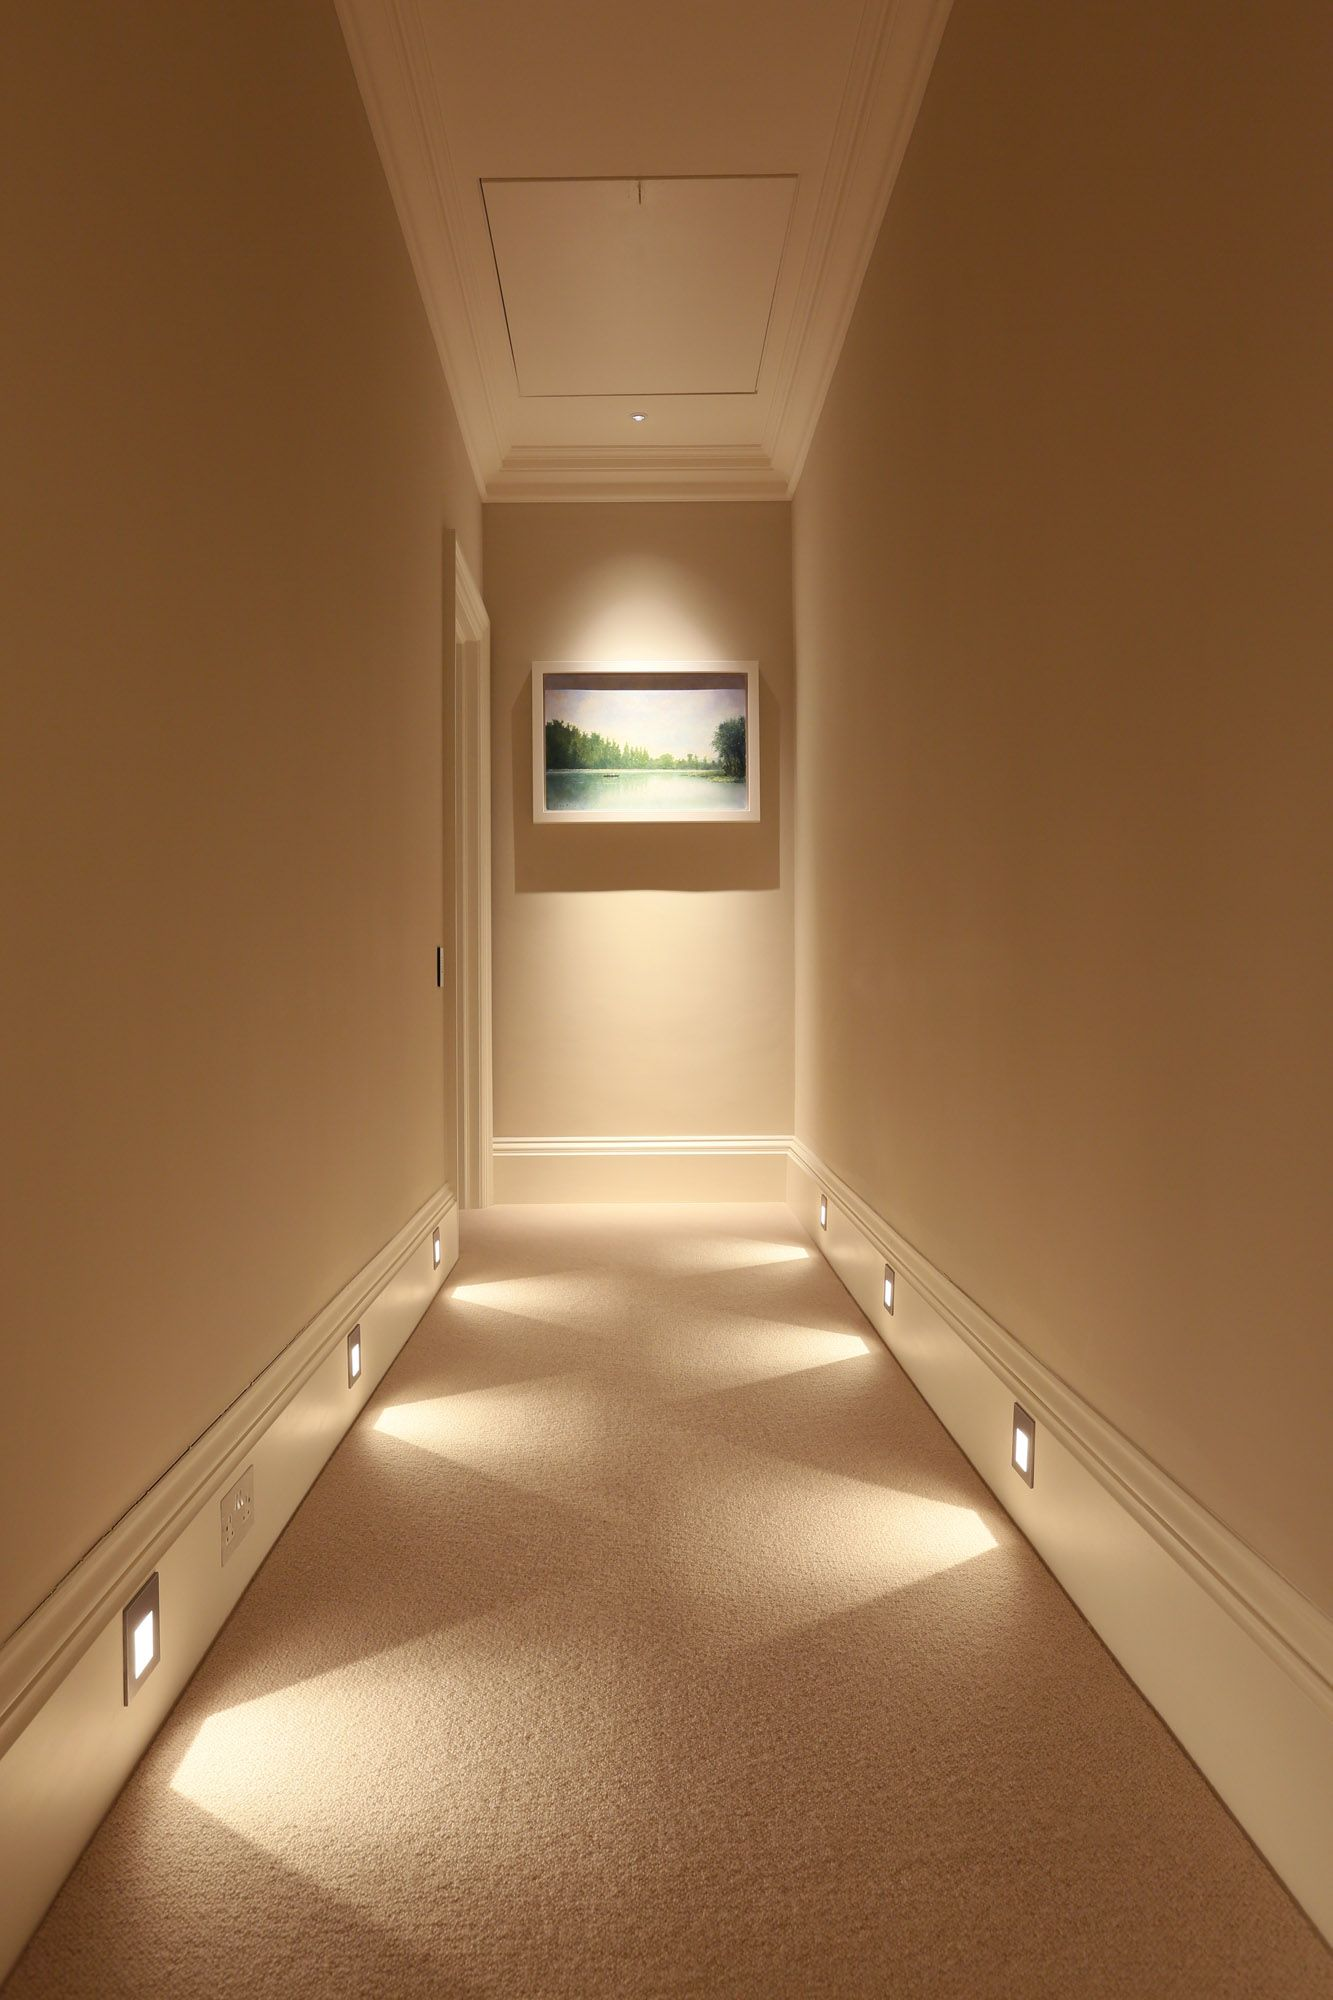 hallway lighting most popular light for stairways, check it out :) #homeideas #stairways VMMOLWJ